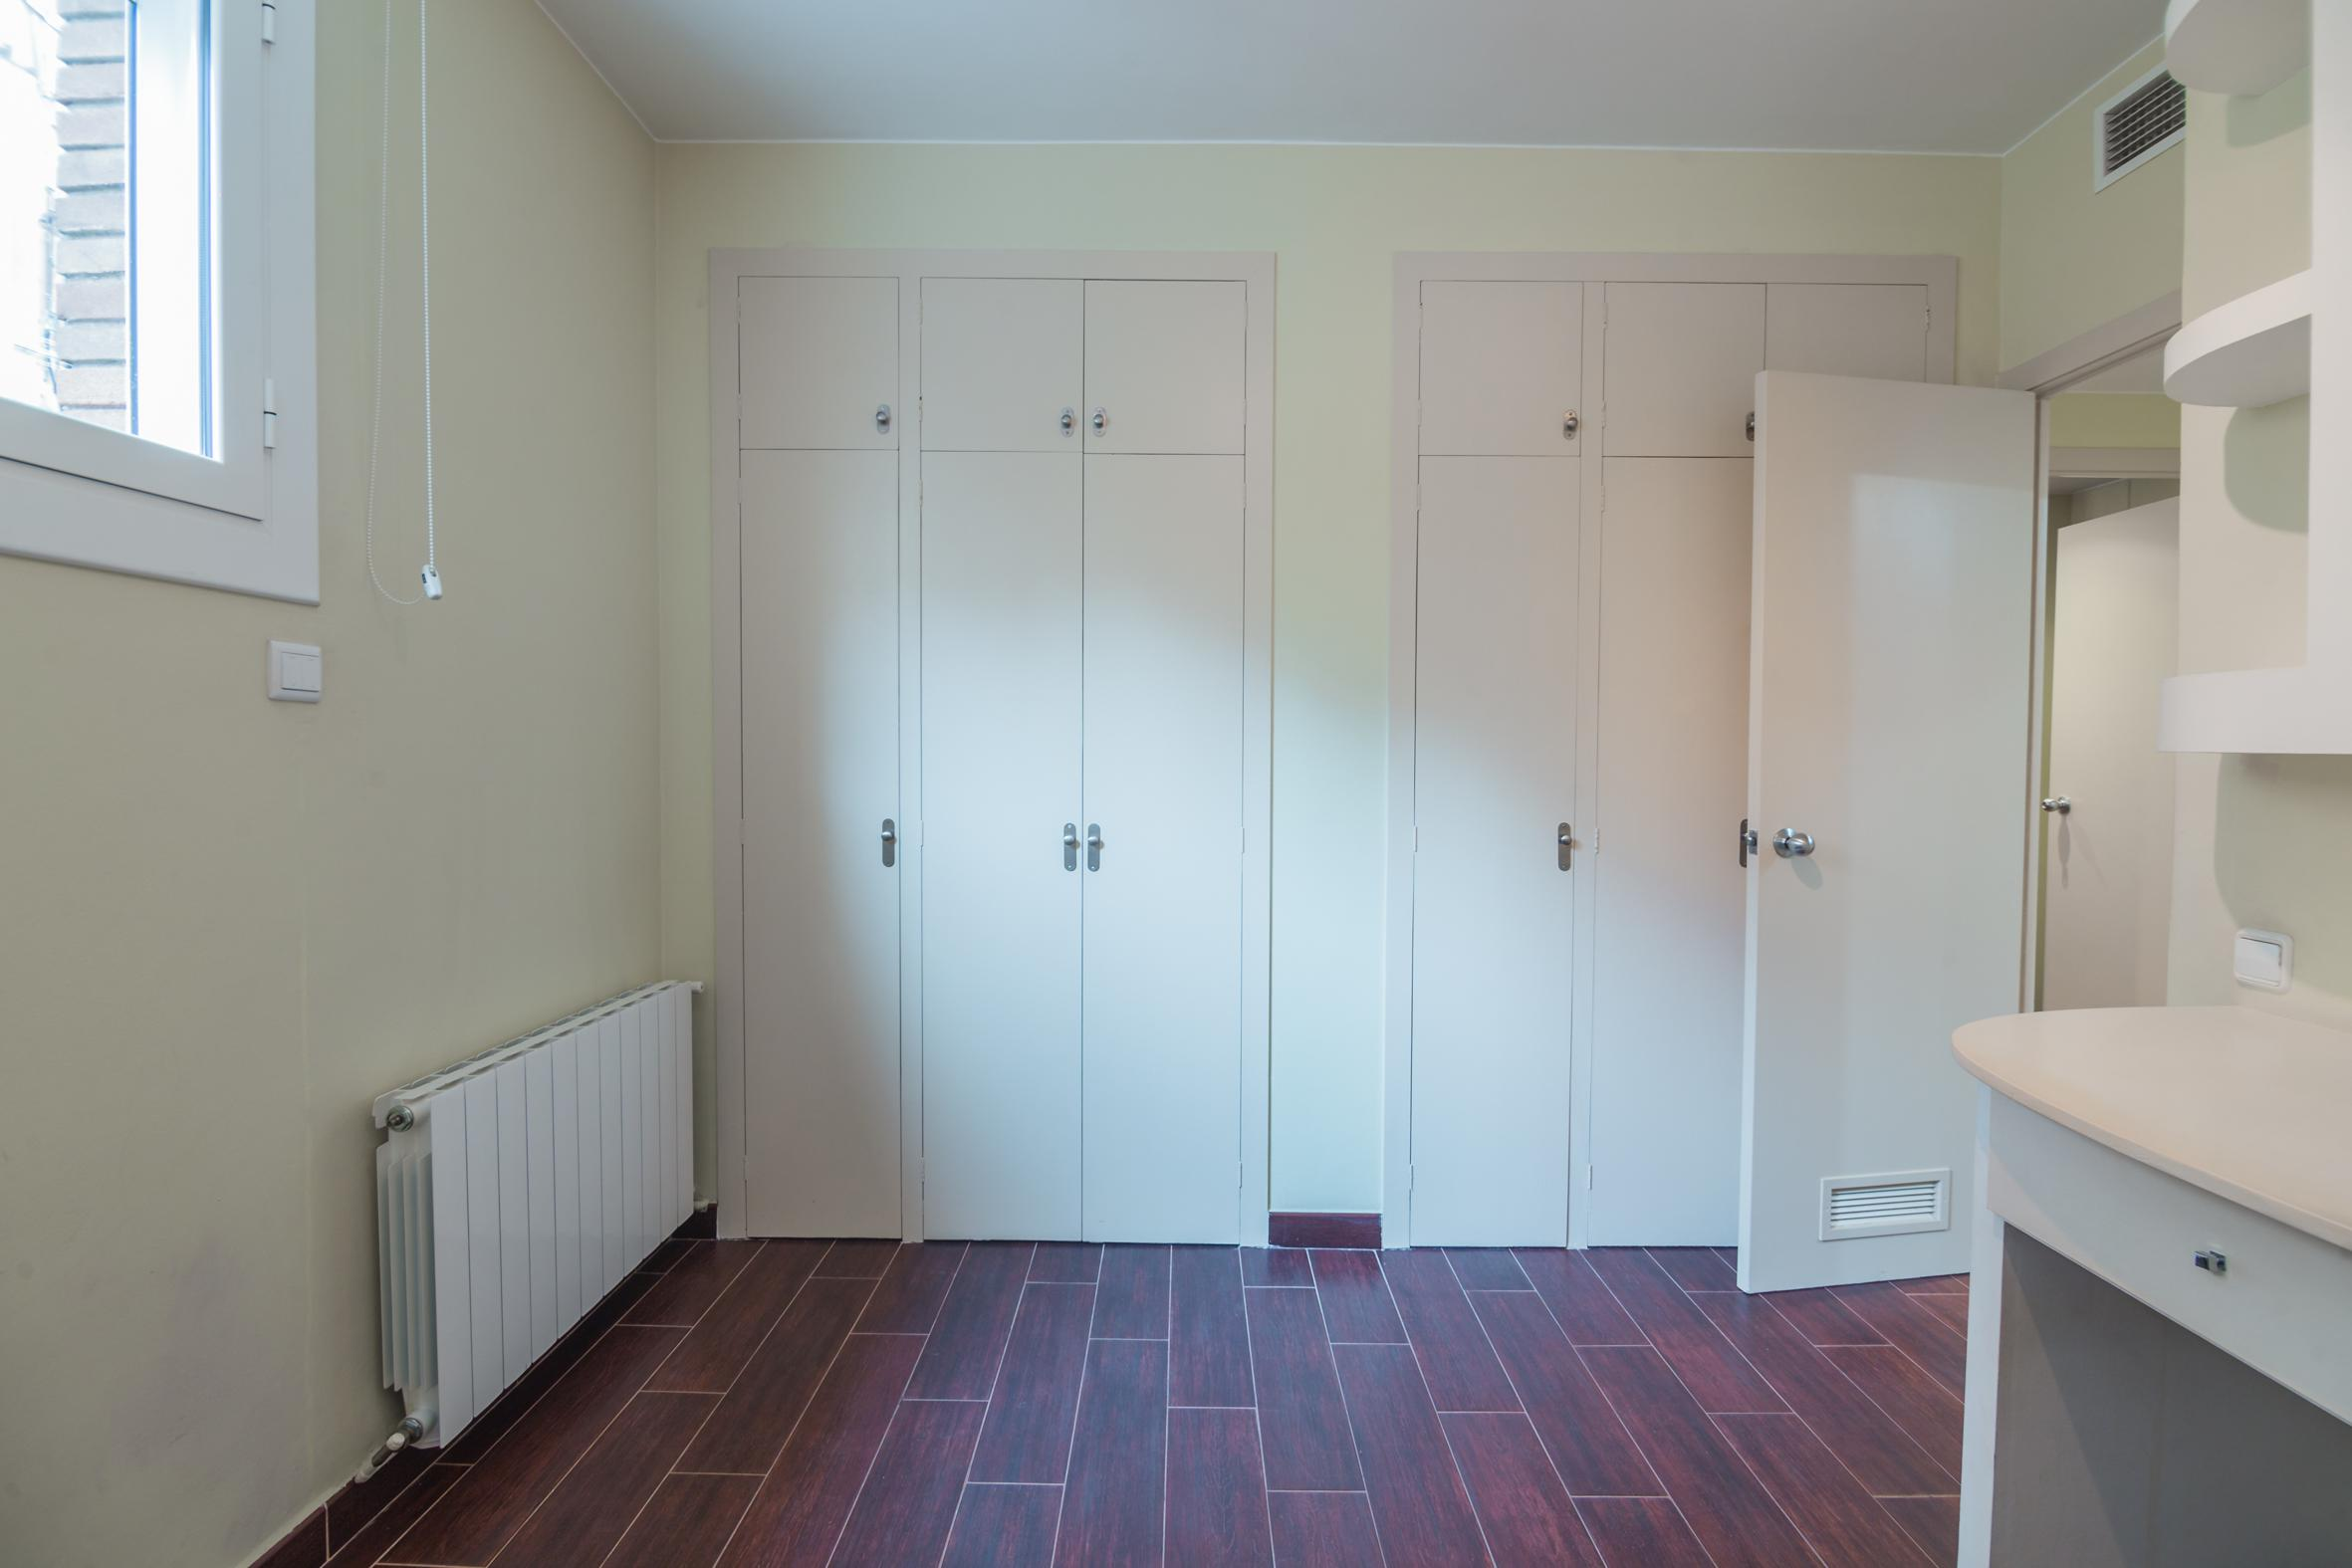 246902 Flat for sale in Les Corts, Pedralbes 17